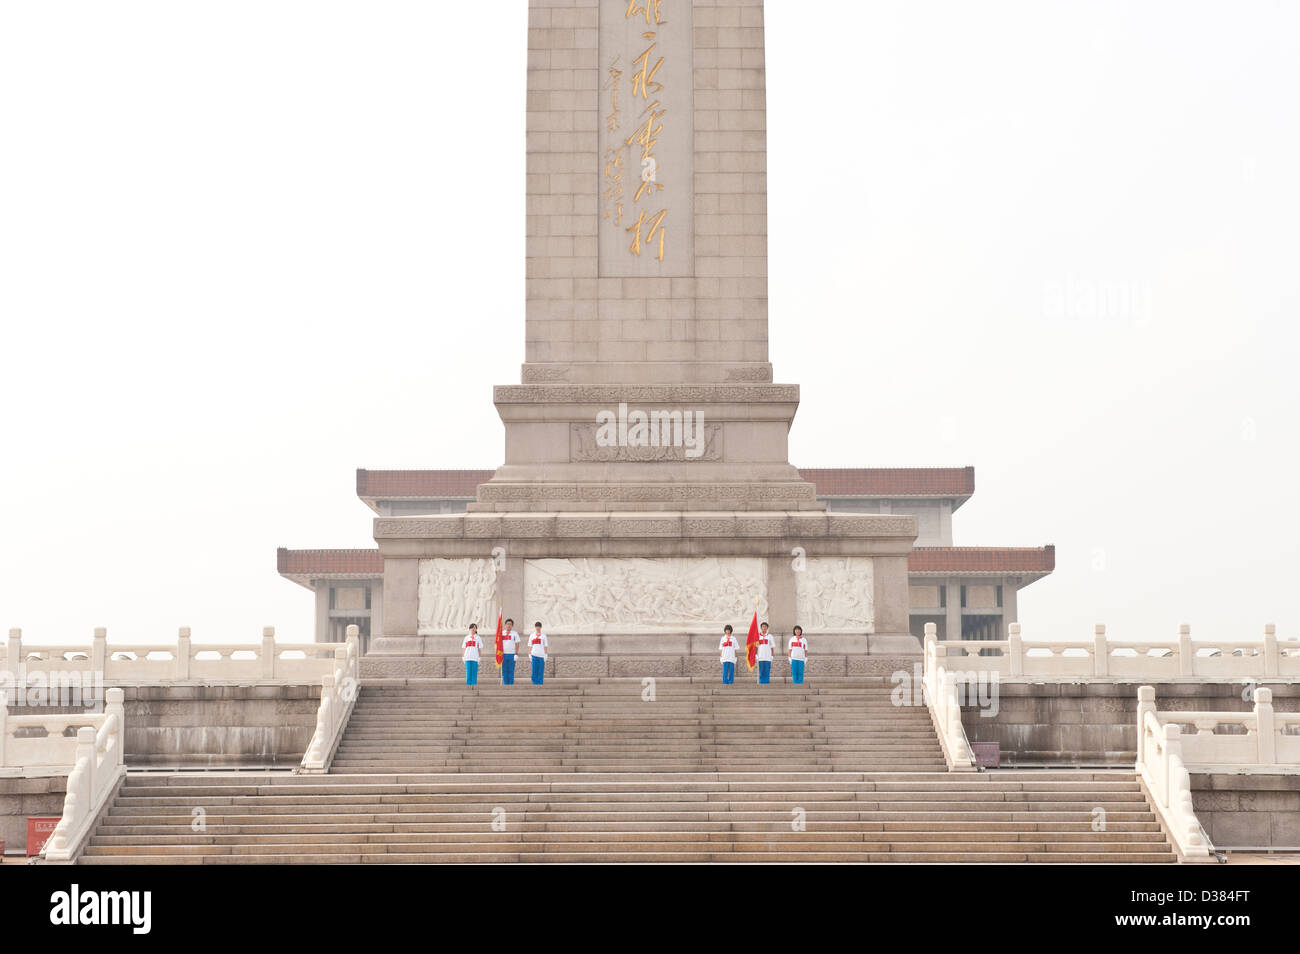 Monument to The People's Heroes Tiananmen Square Beijing China - Stock Image